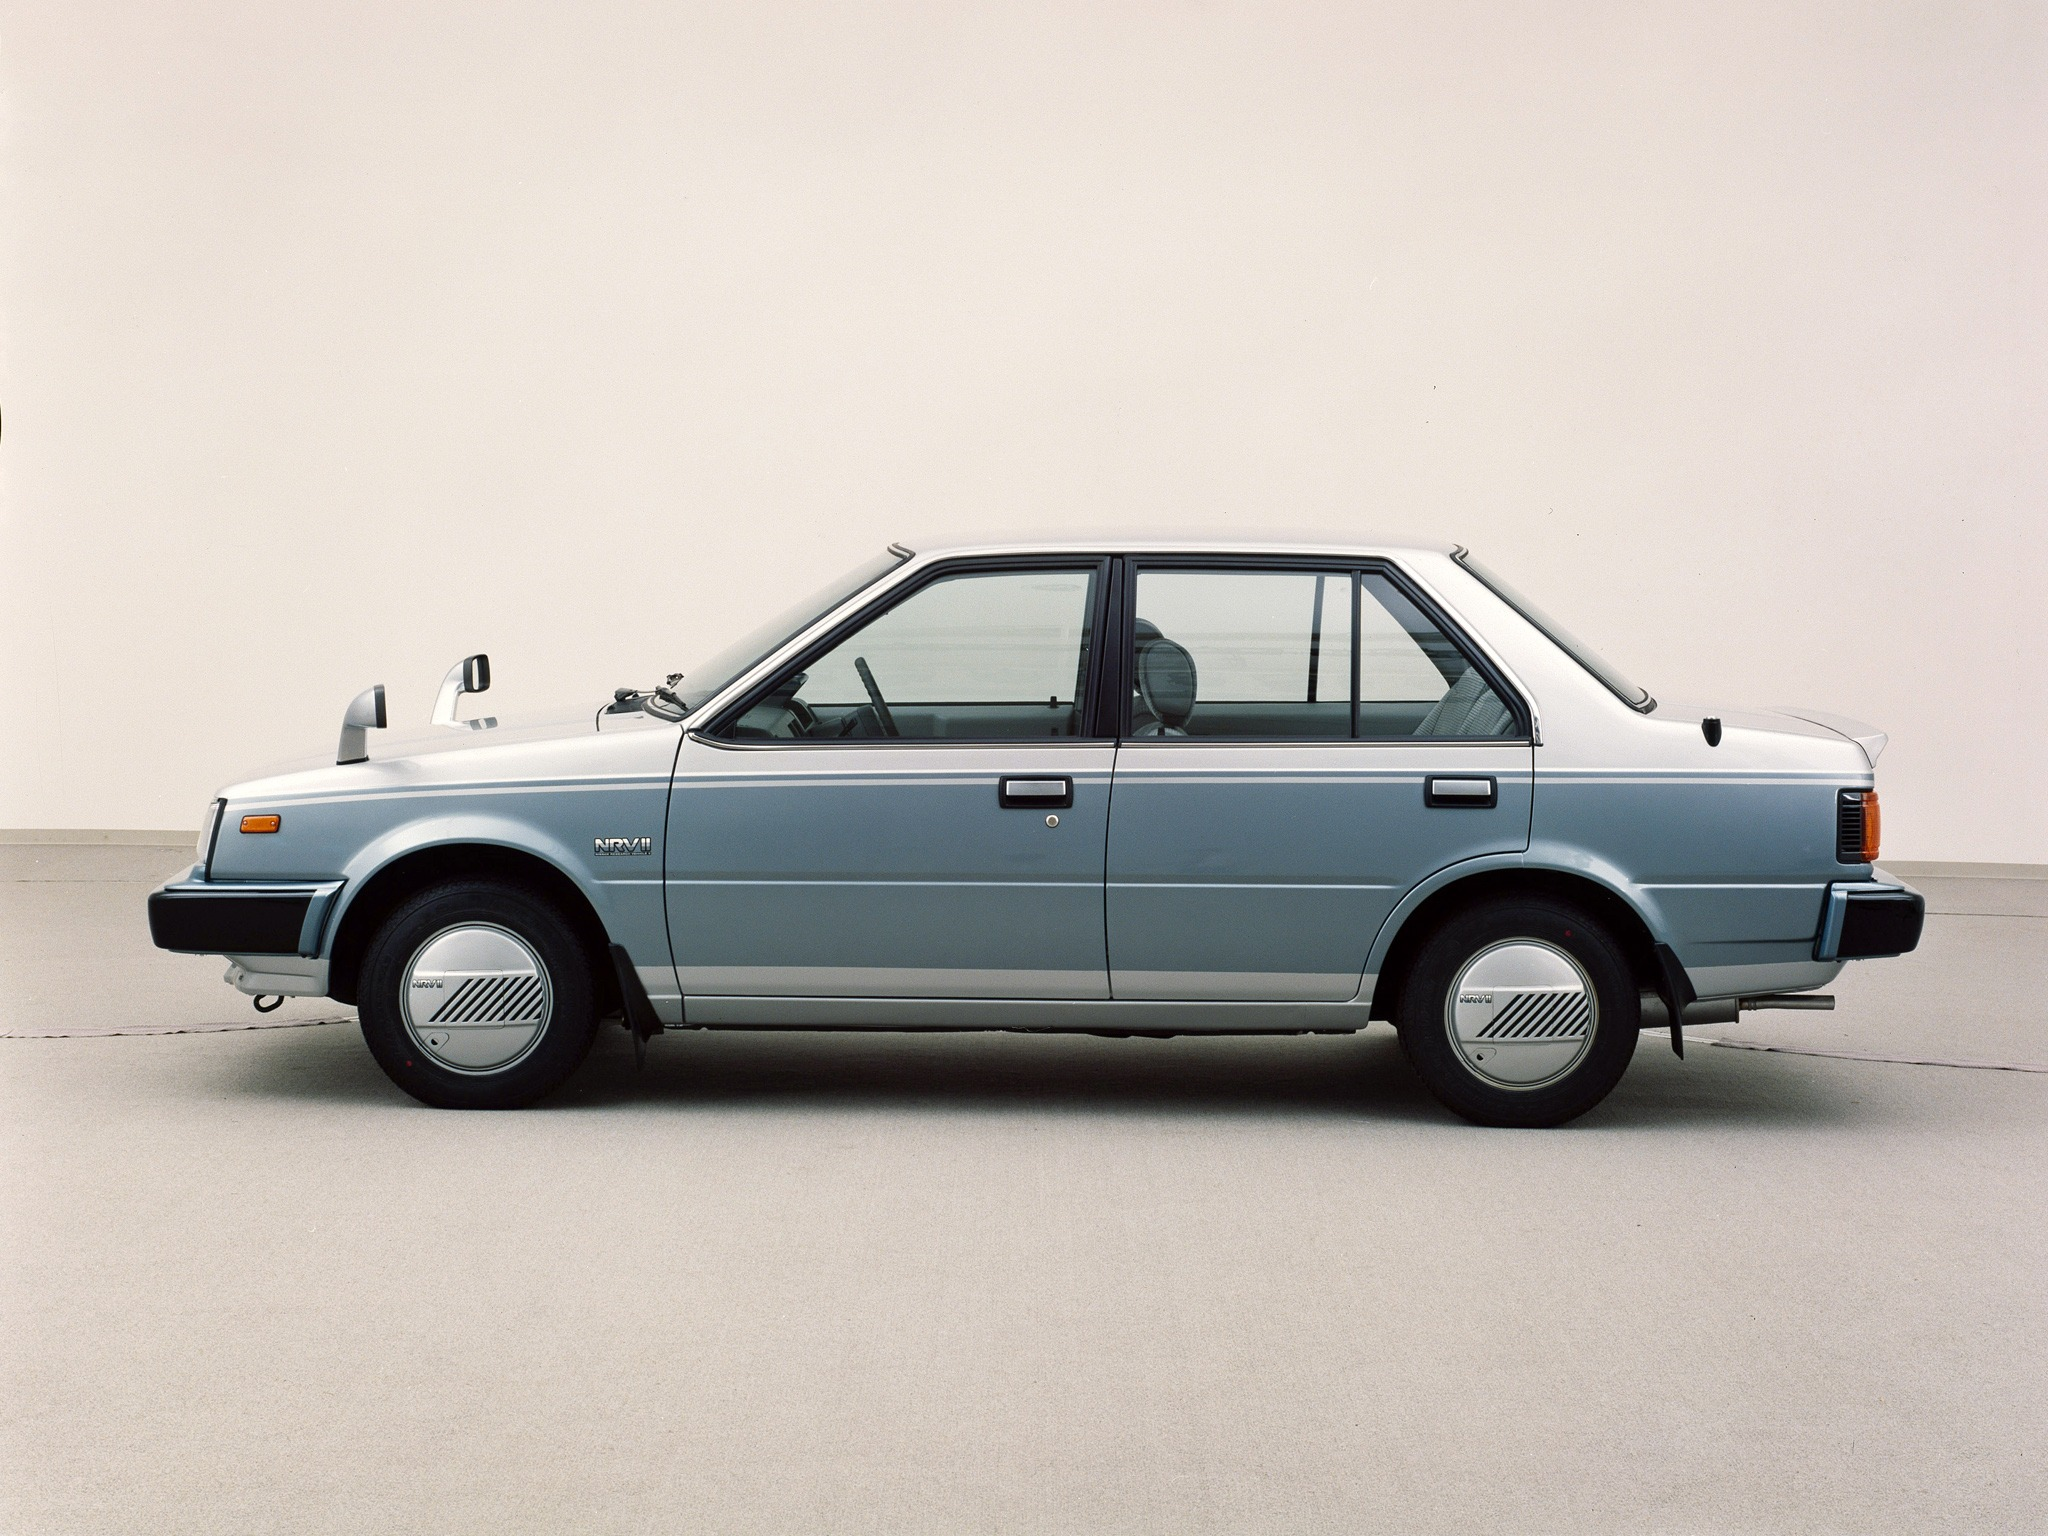 Nissan Nrv Ii Concept B11 1983 Old Concept Cars